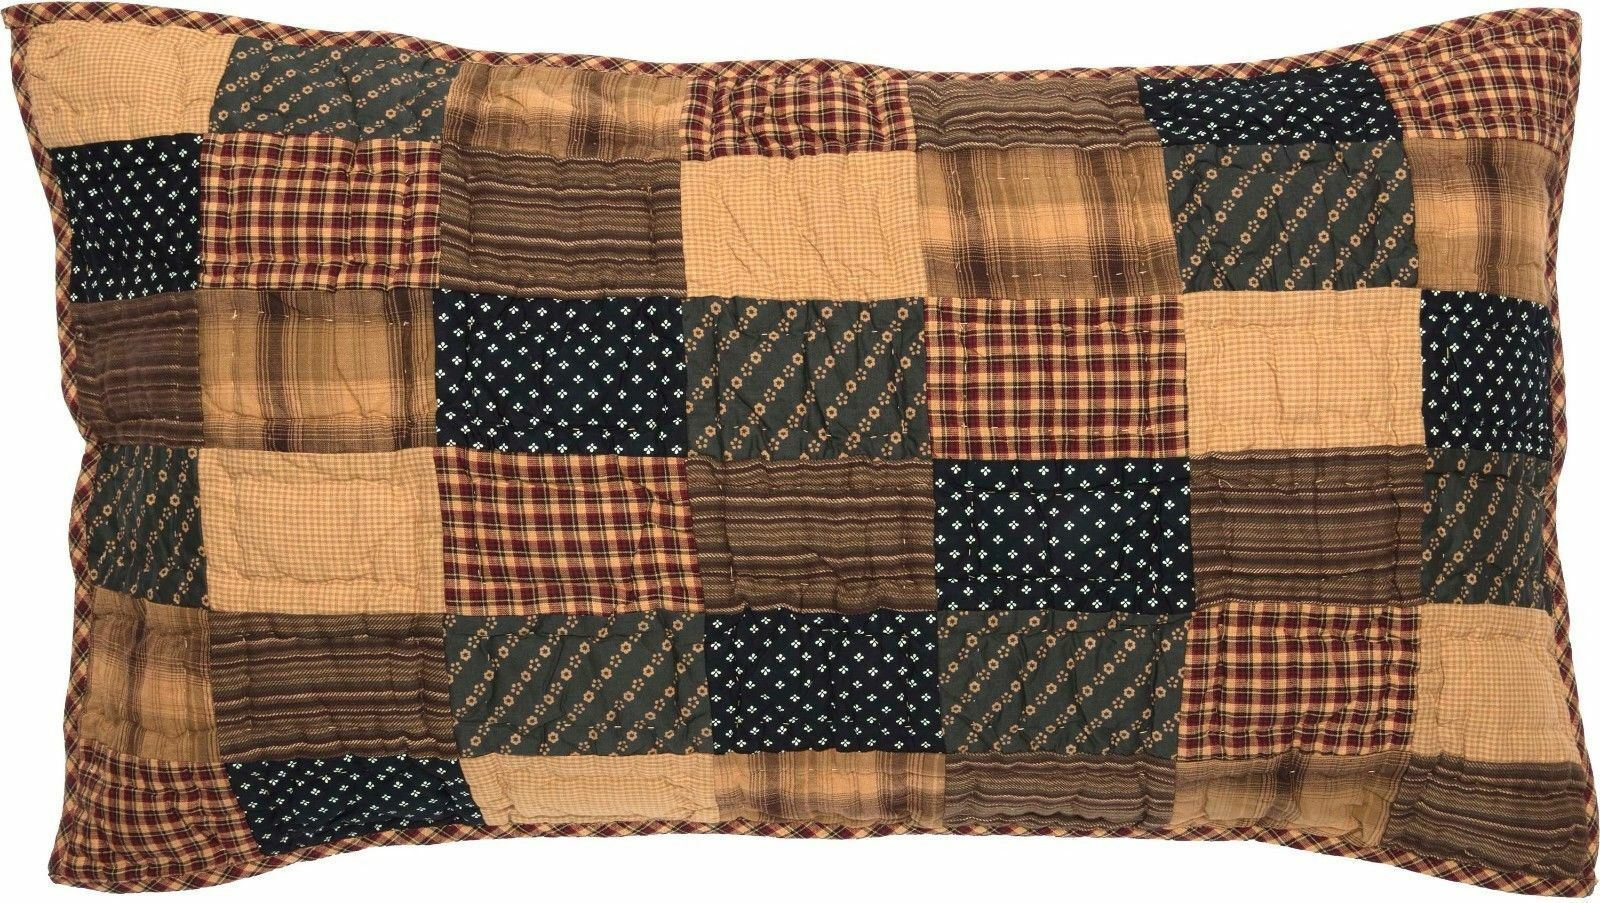 Rustic Country Hand-Quilted King Pillow Sham Red Patchwork Patriotic Patch